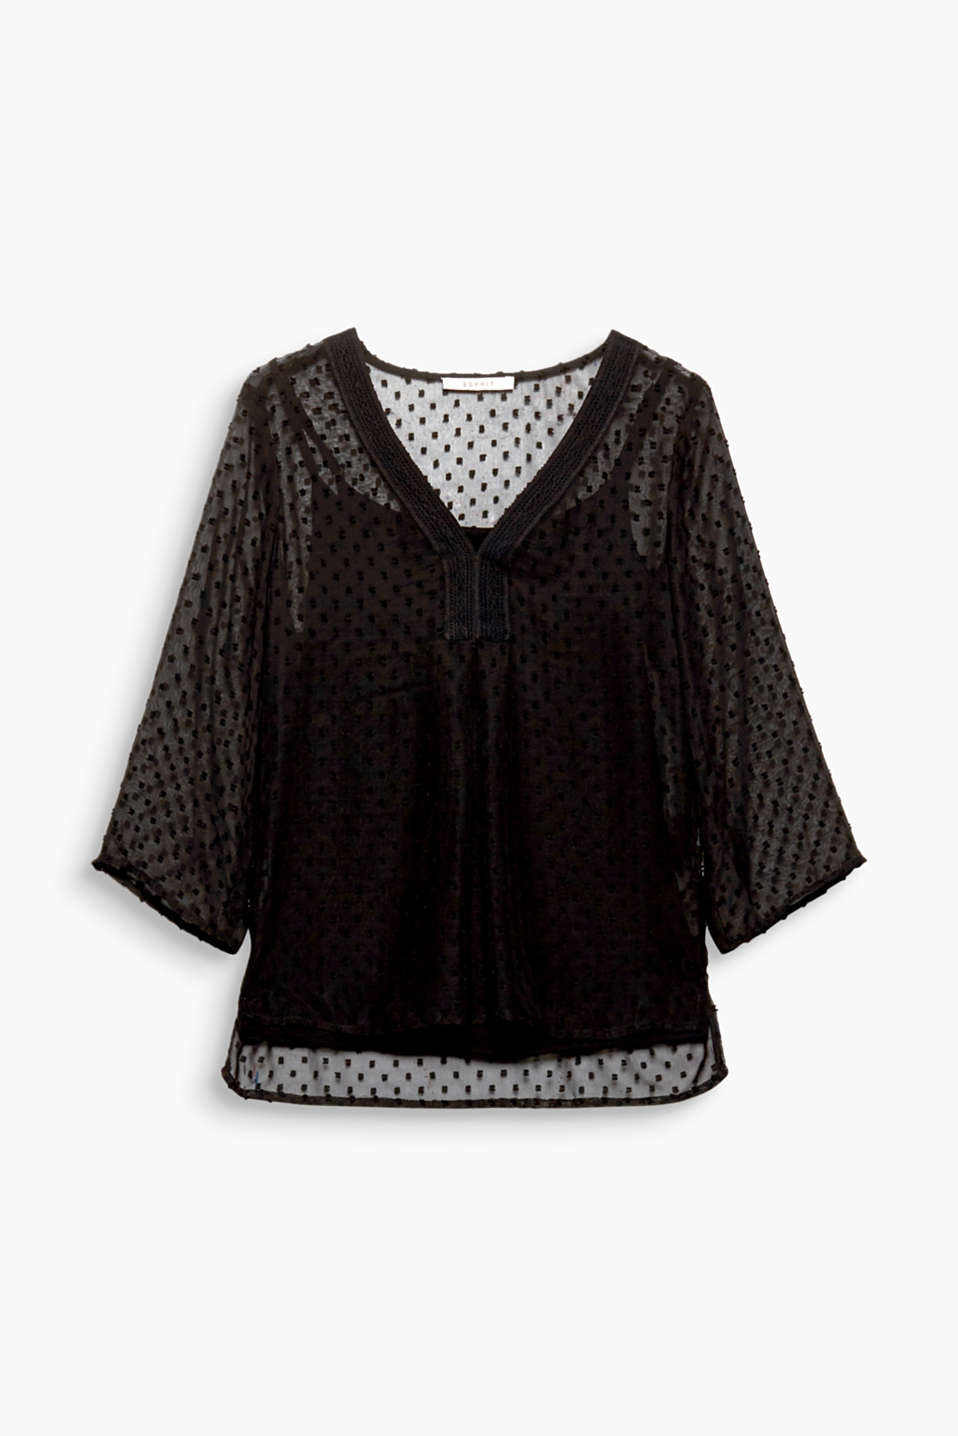 Transparency + decoration: interwoven polka dots and an embroidered neckline decorate this sheer tunic blouse!